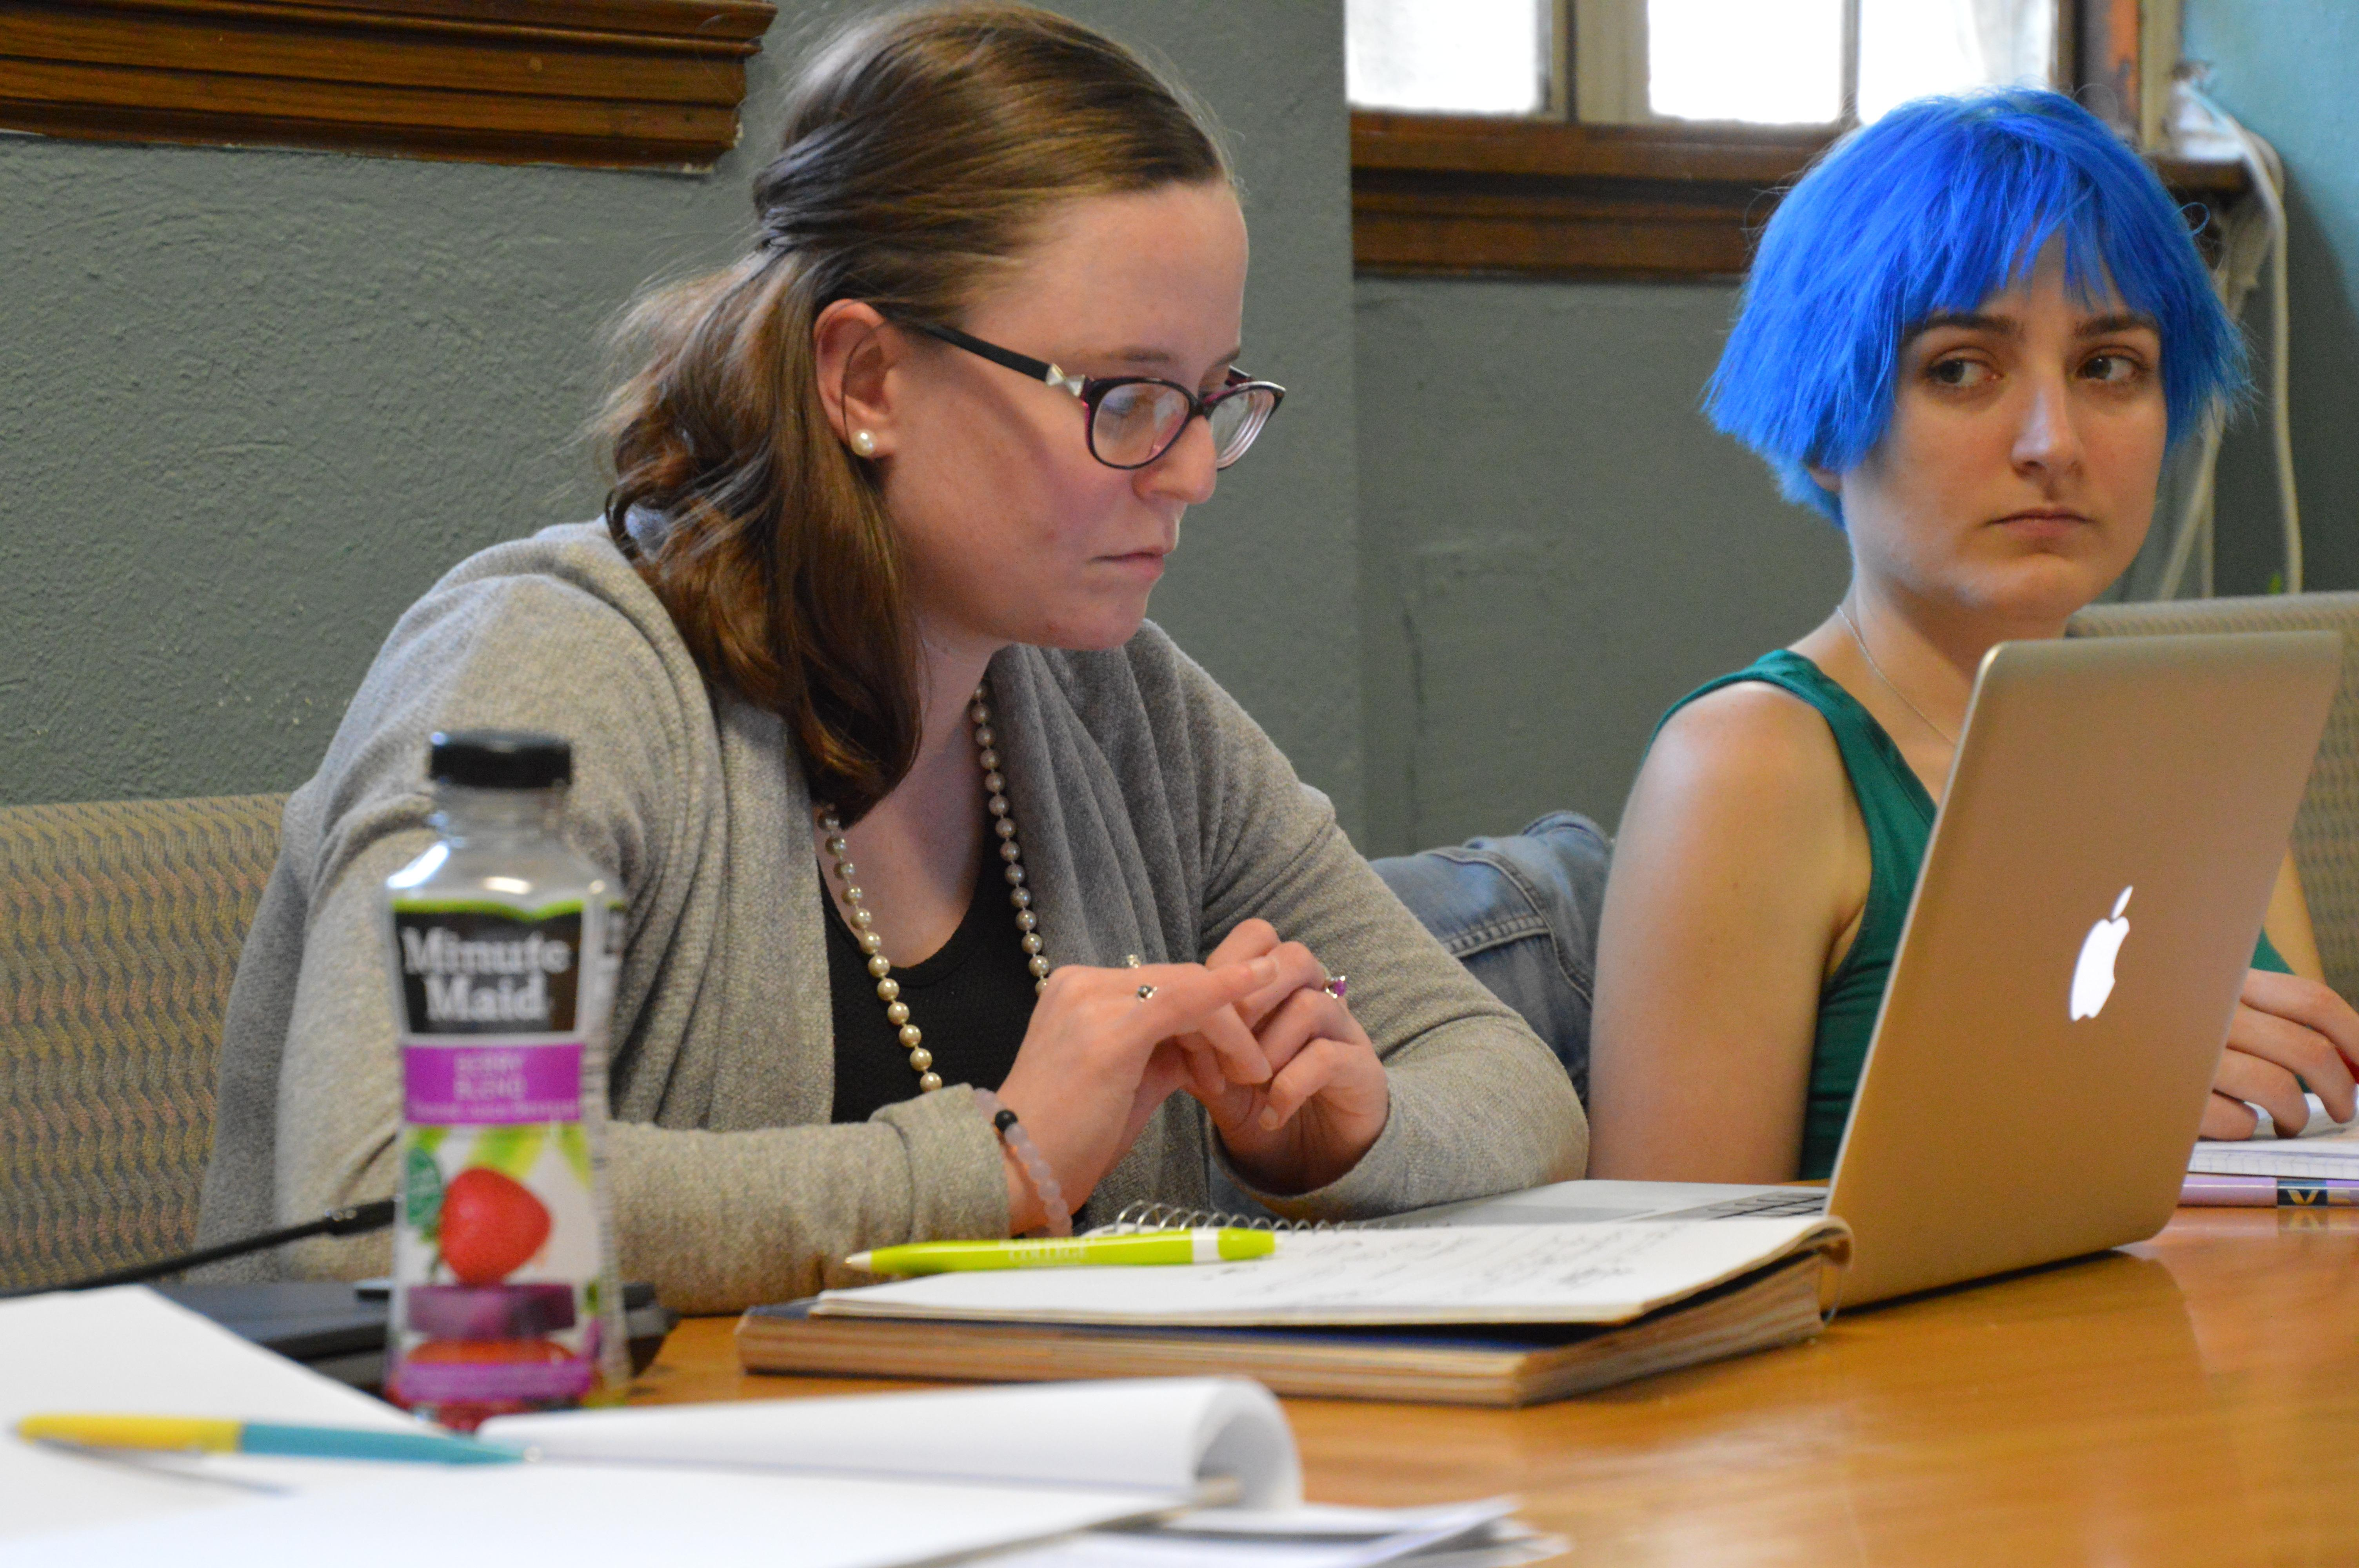 columbia graduate school creative writing Writing the creative writing department offers writing workshops in fiction writing, poetry, and nonfiction writing courses are also offered in film writing, structure and style, translation, and the short story.